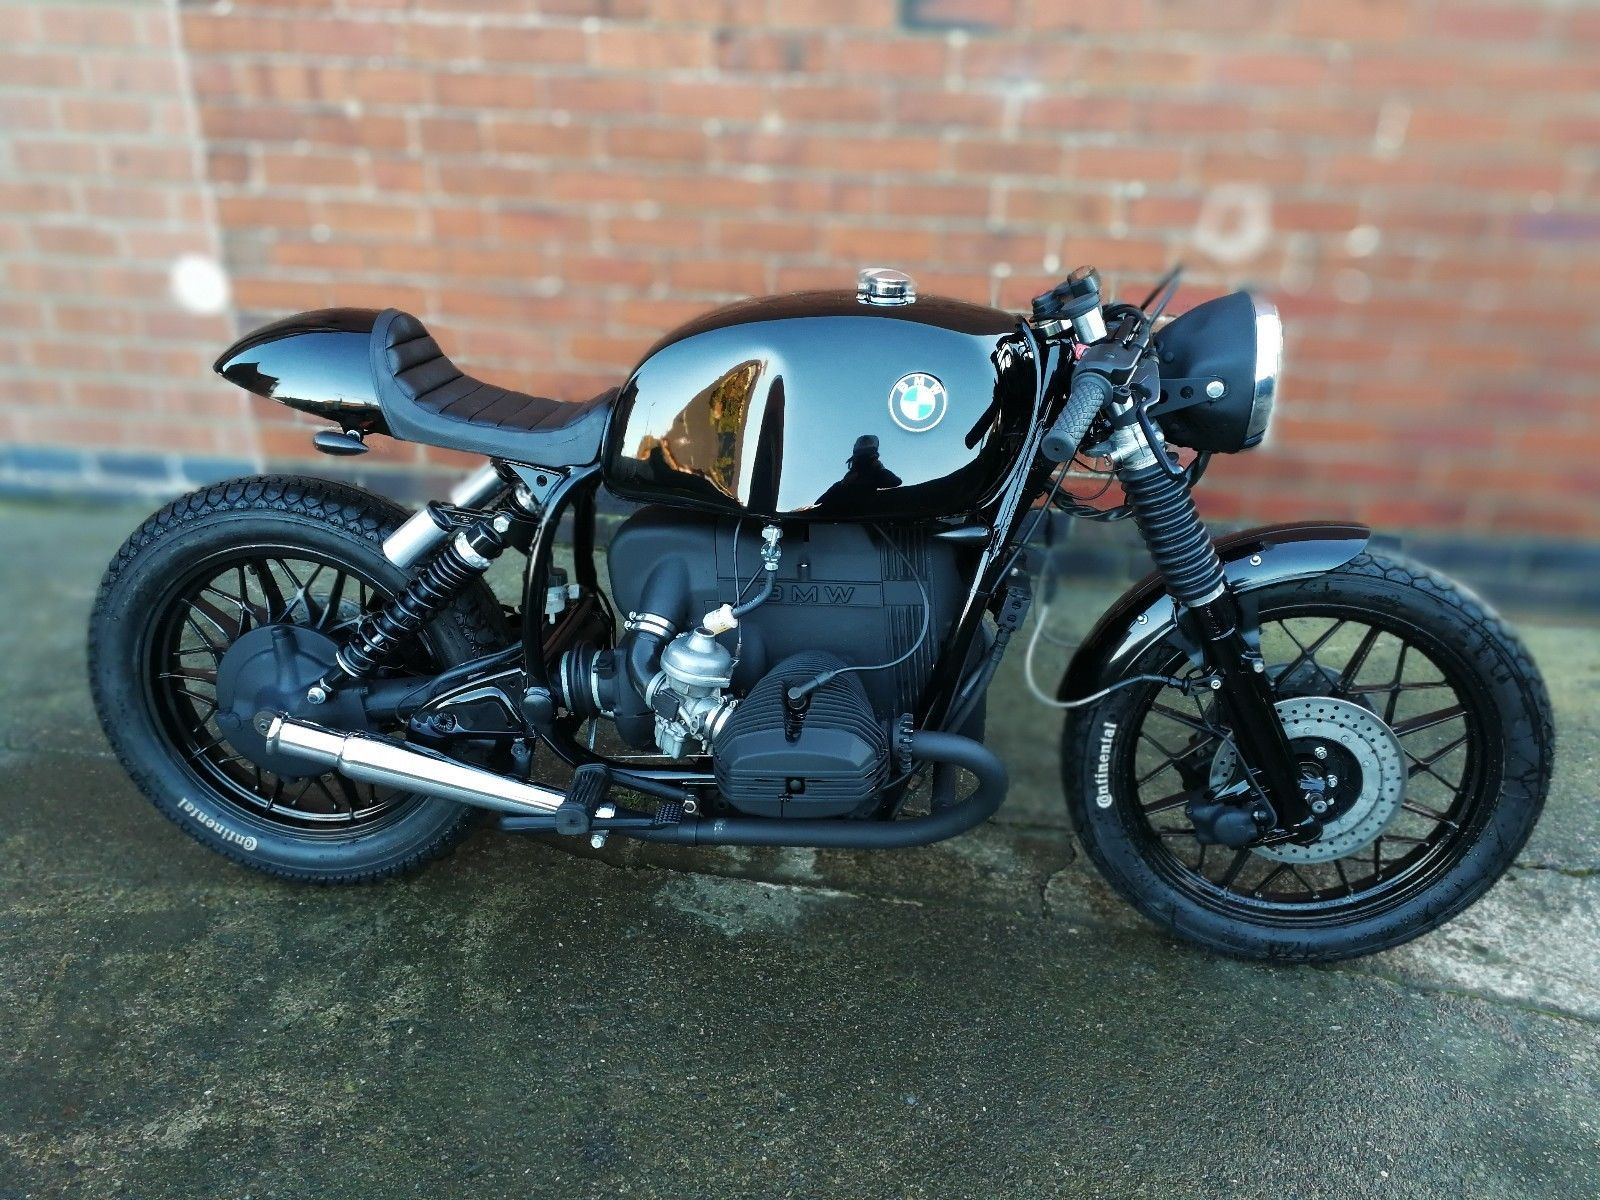 So I Have Decided To Sell My Beautiful BMW R100RS Cafe Racer As Need Thin Out Collection The Bike Has Had Thousands Spent On It Turn Into